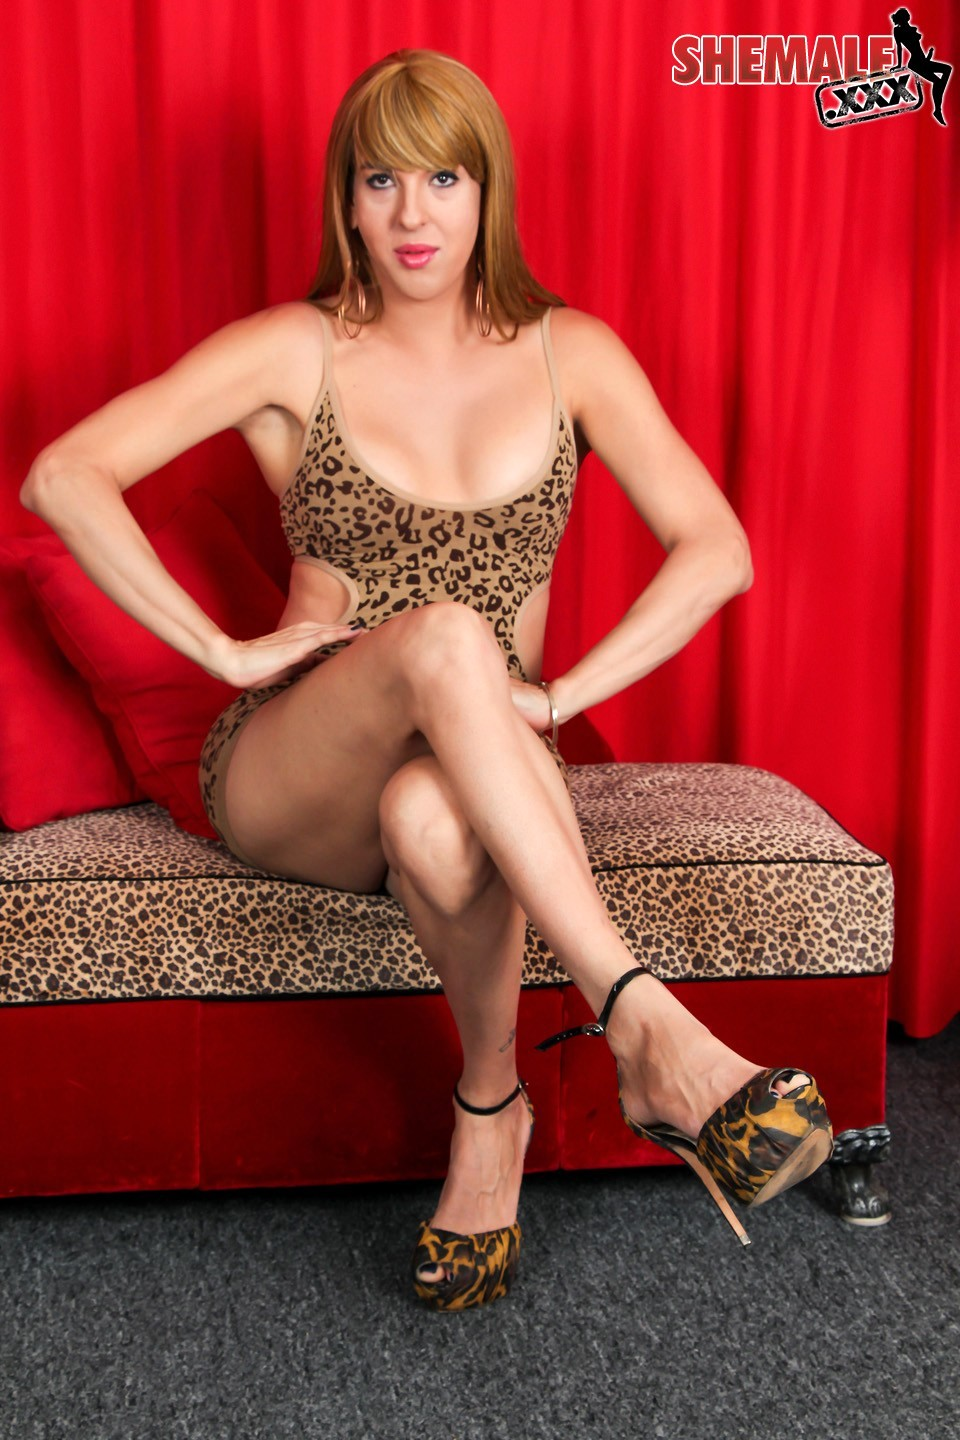 Provoking Janira In Animal Printed Outfit